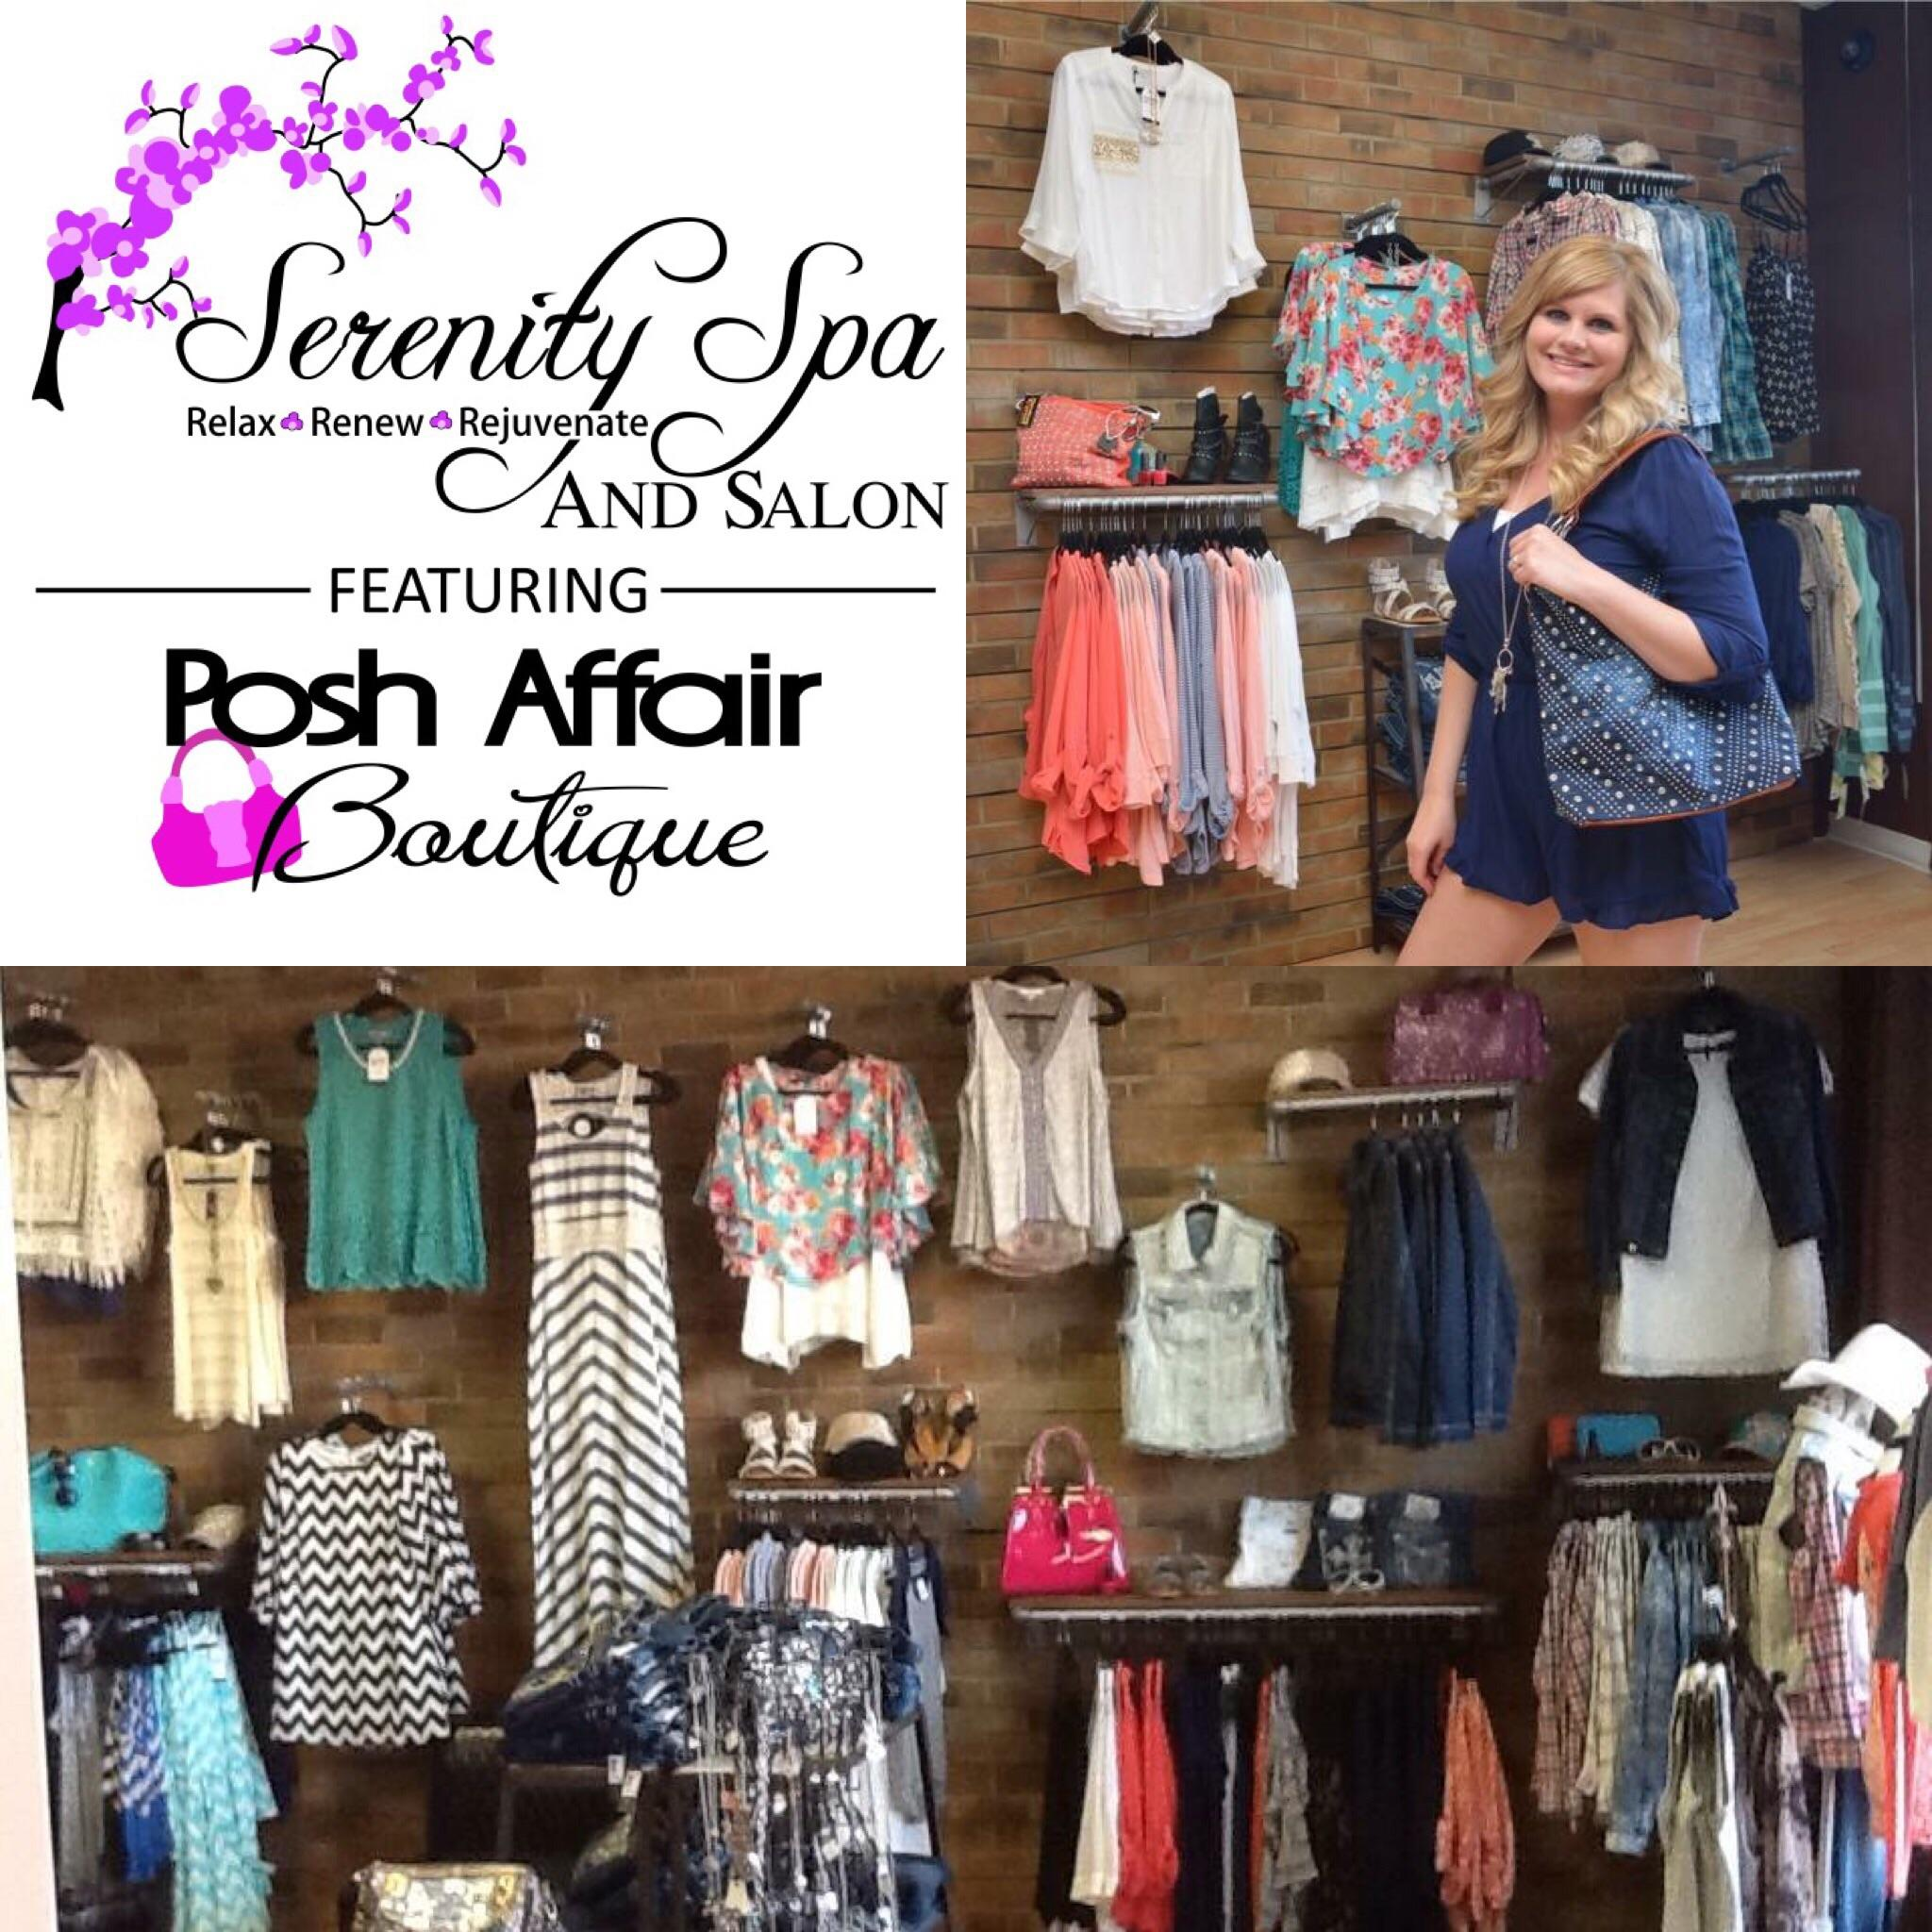 Serenity Spa And Salon Featuring Posh Affair Boutique